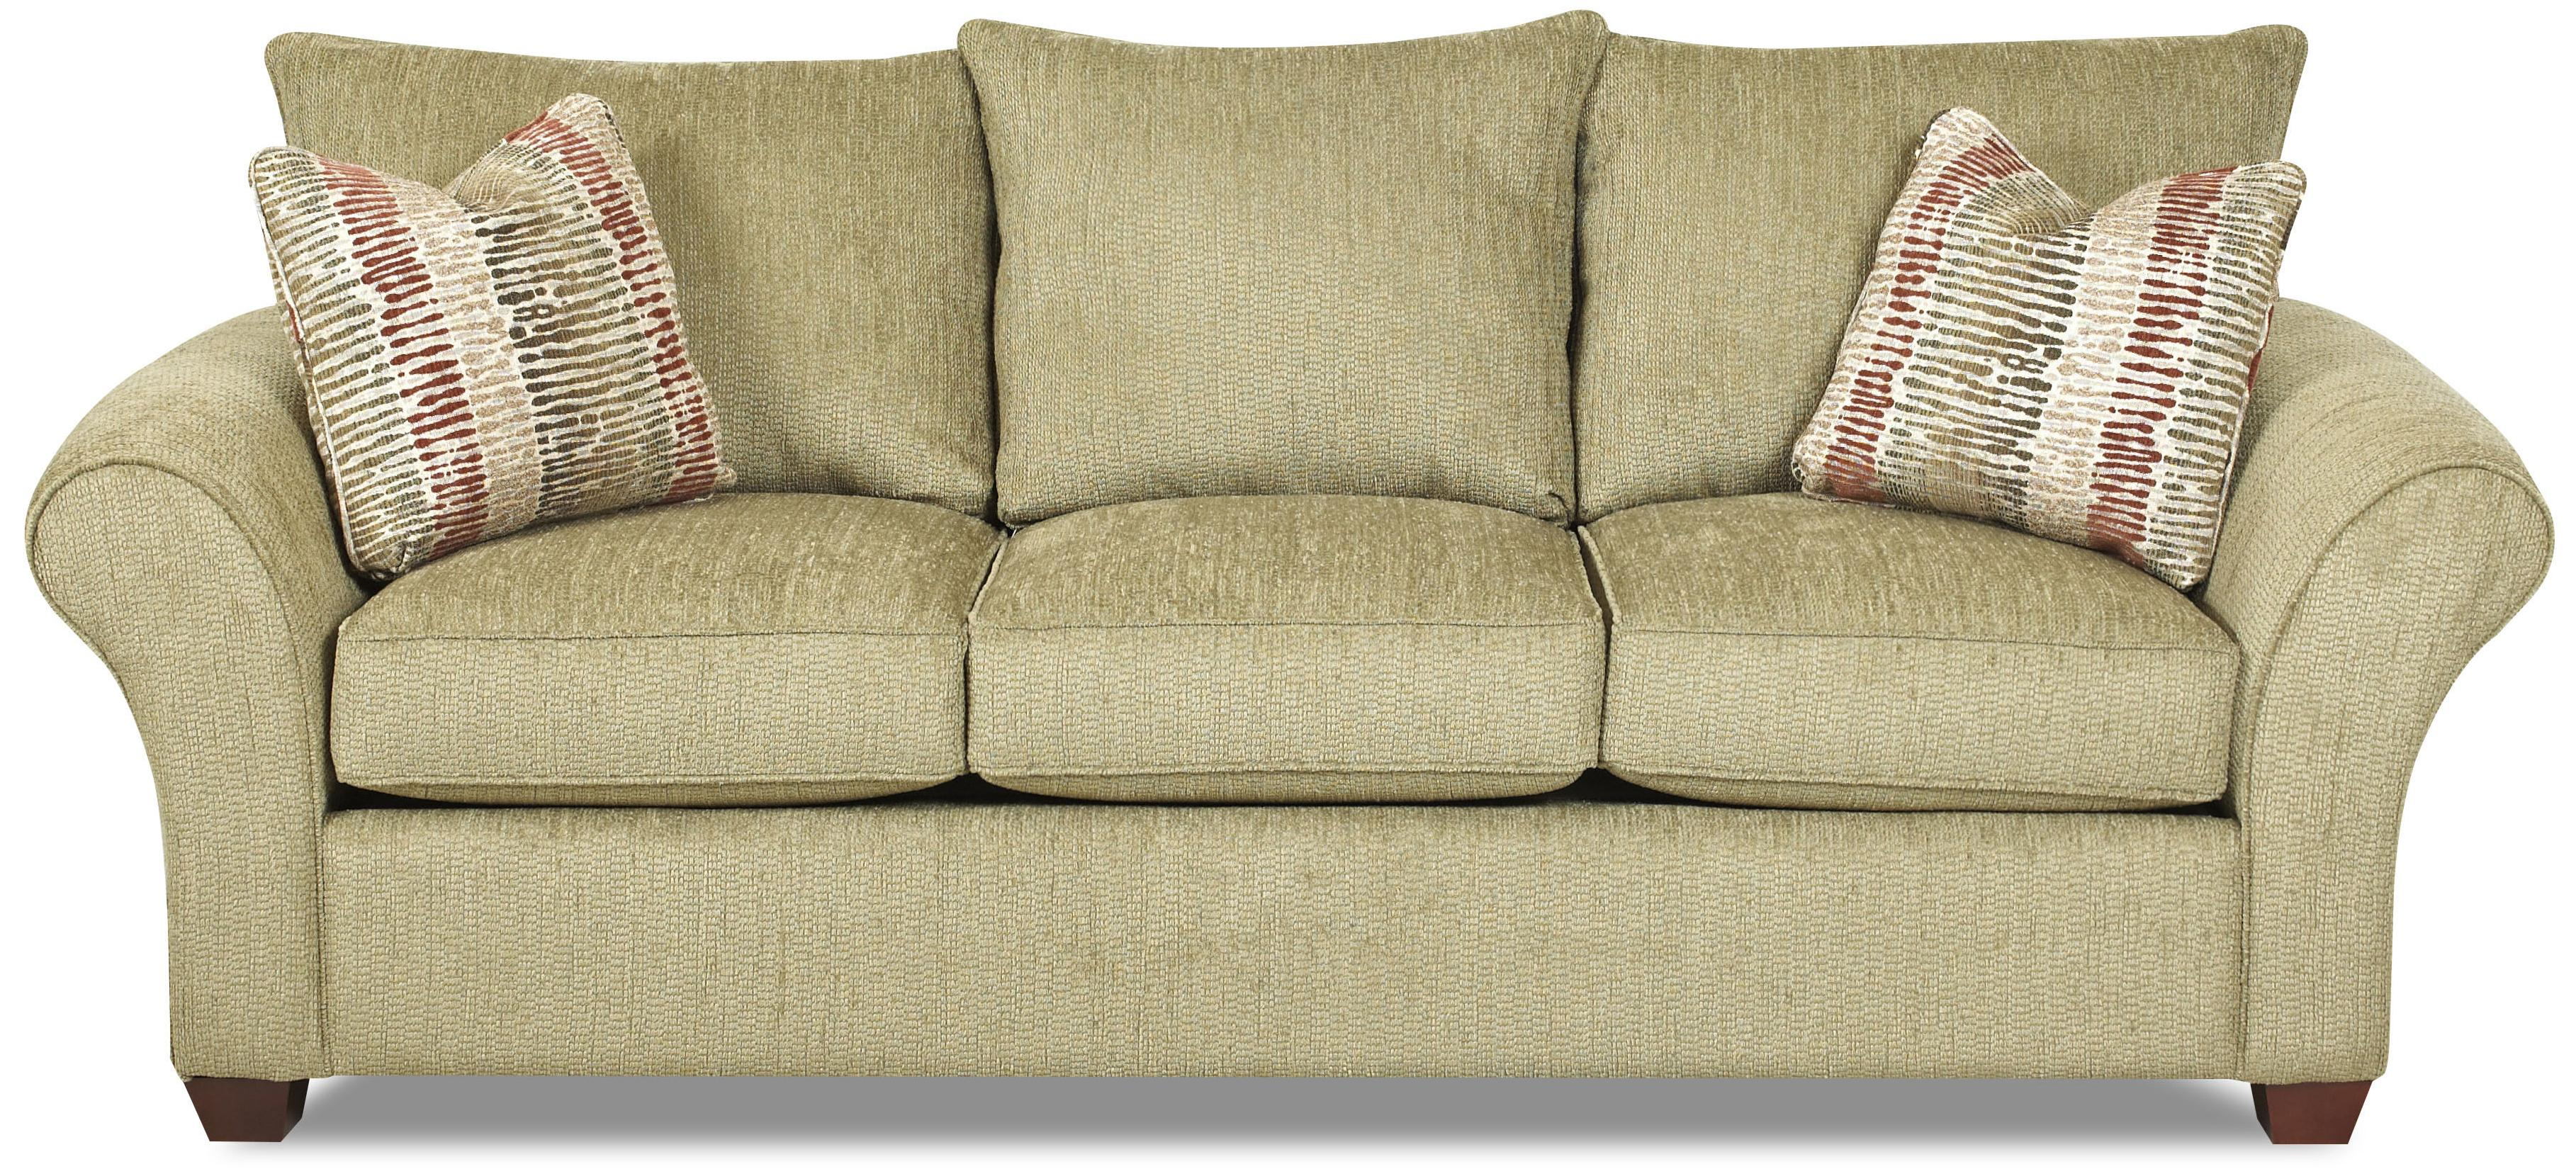 Fletcher Comfortable Stationary Couch By Klaussner Wolf